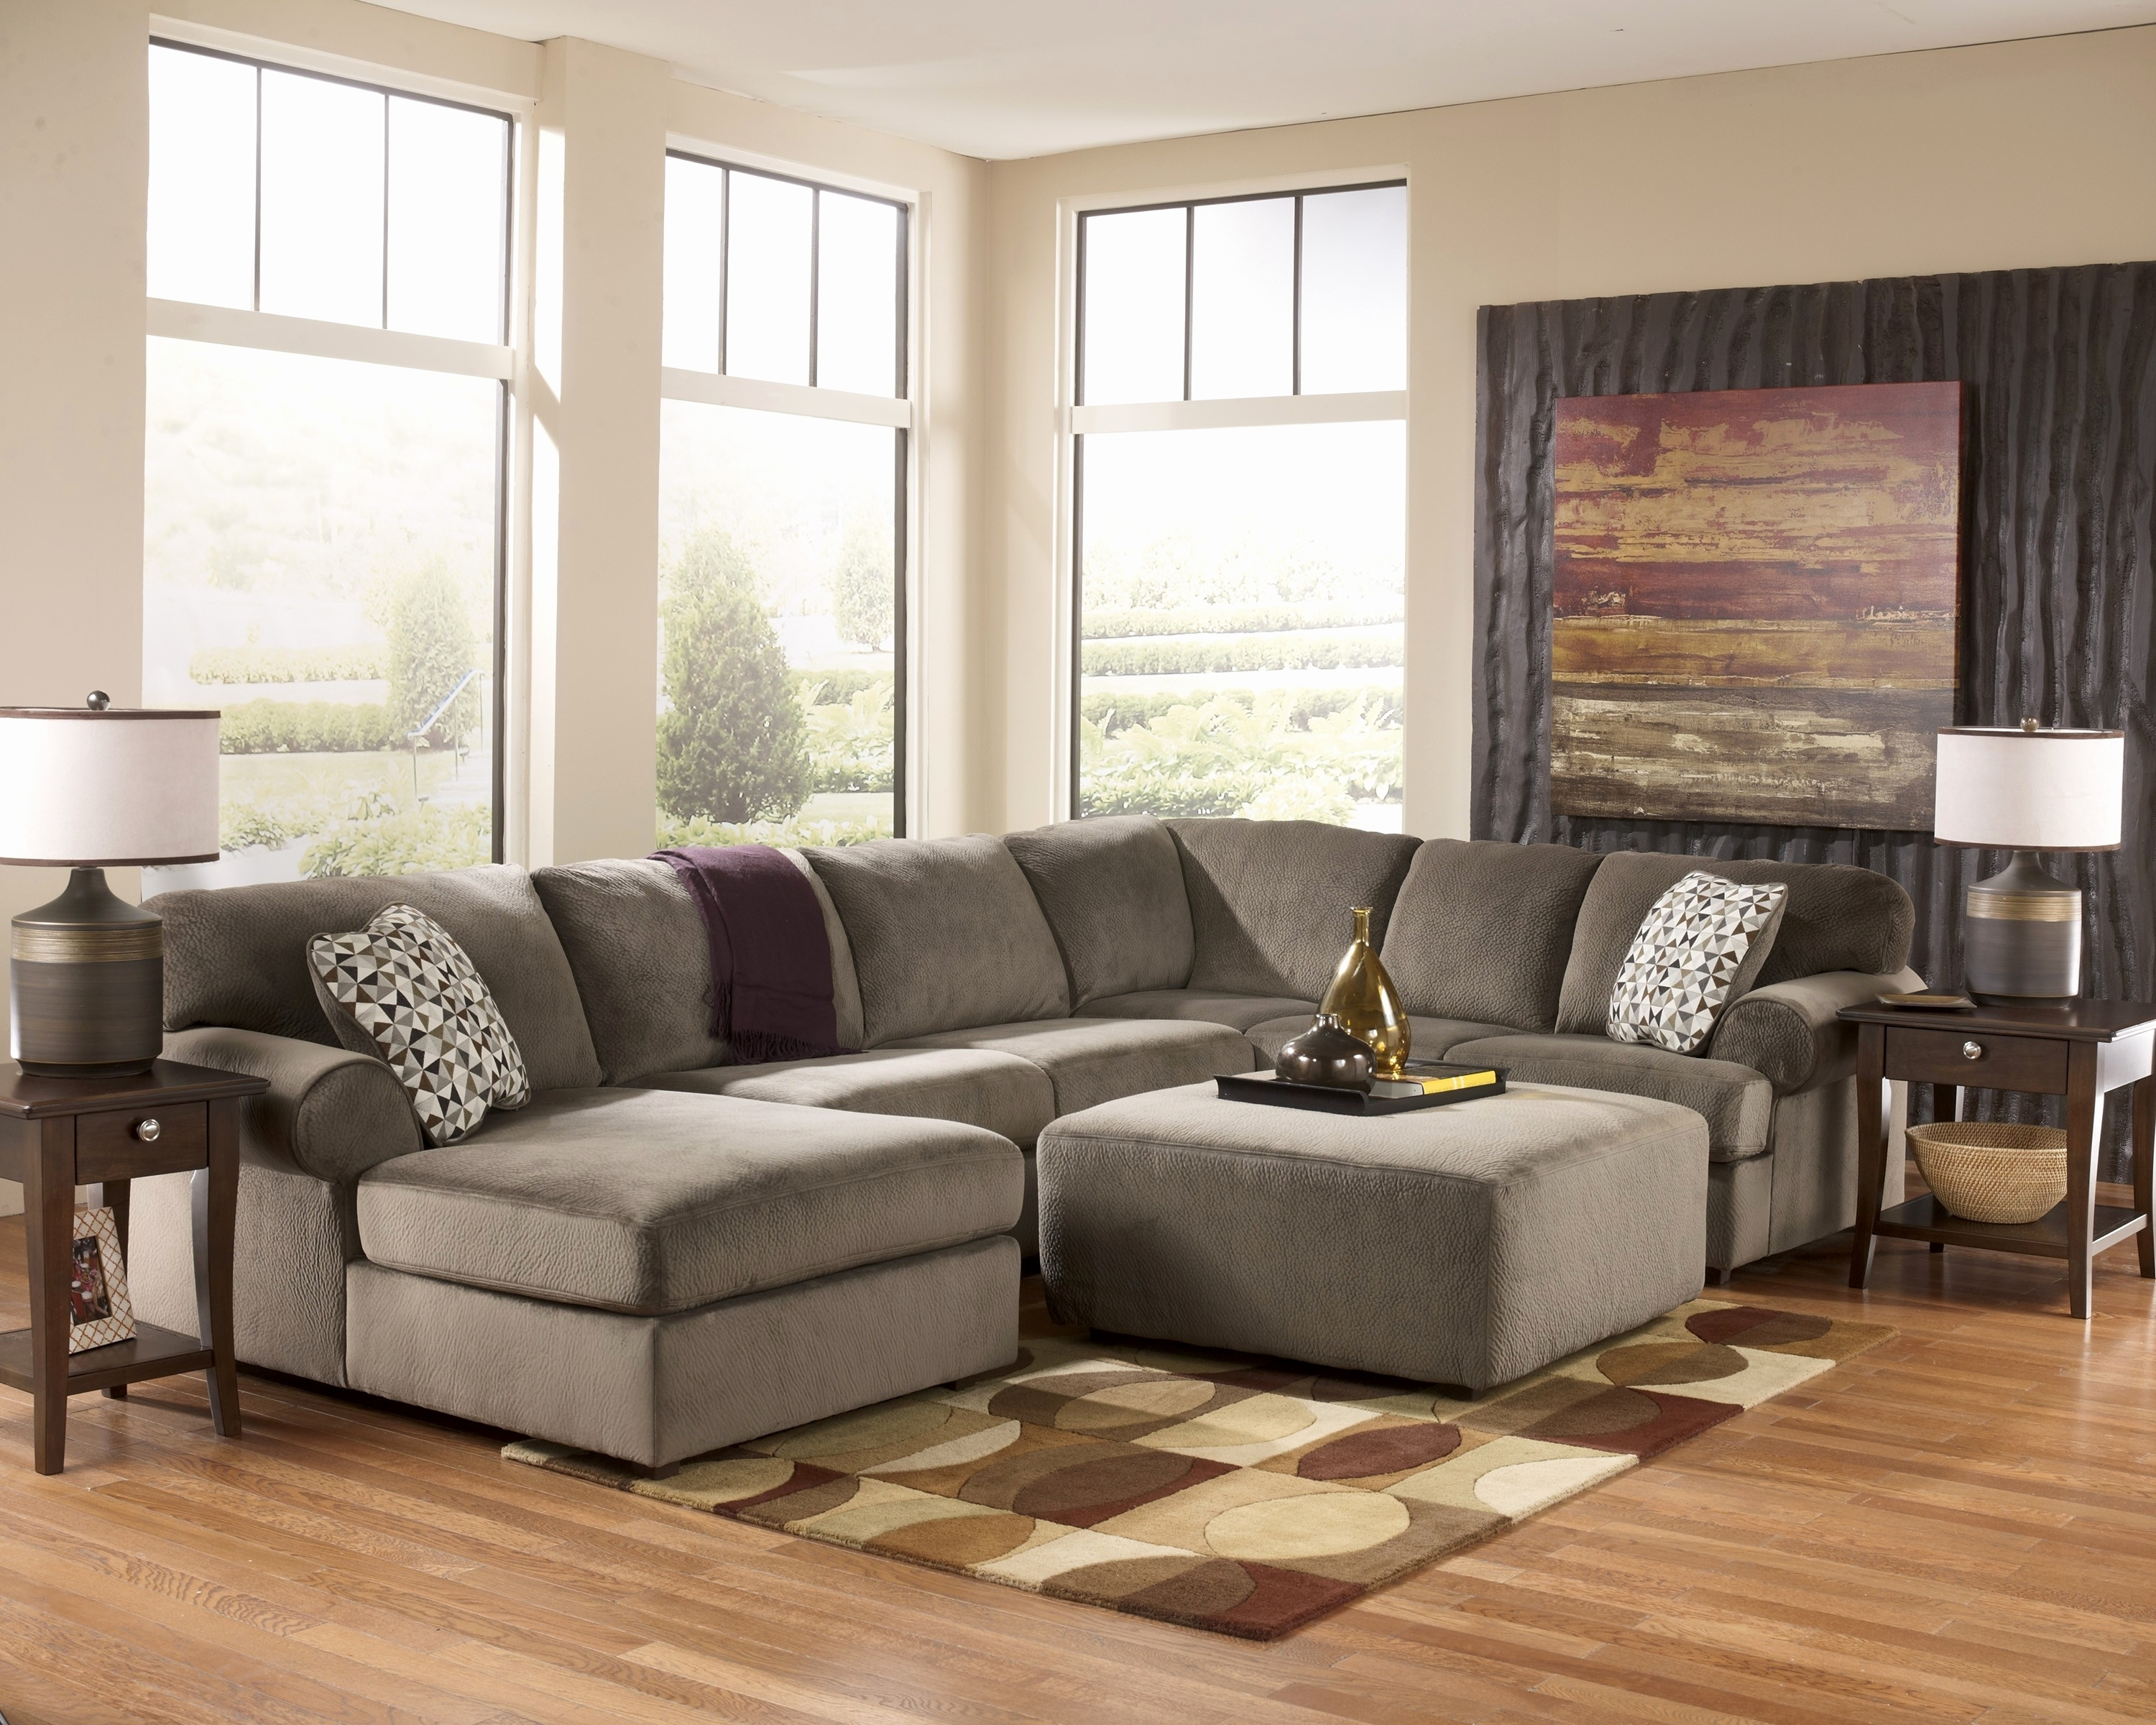 Furniture : Extra Large Sectional Sofa With Chaise And Ottoman U Pertaining To Well Known Sectional Sofas With Oversized Ottoman (View 16 of 20)